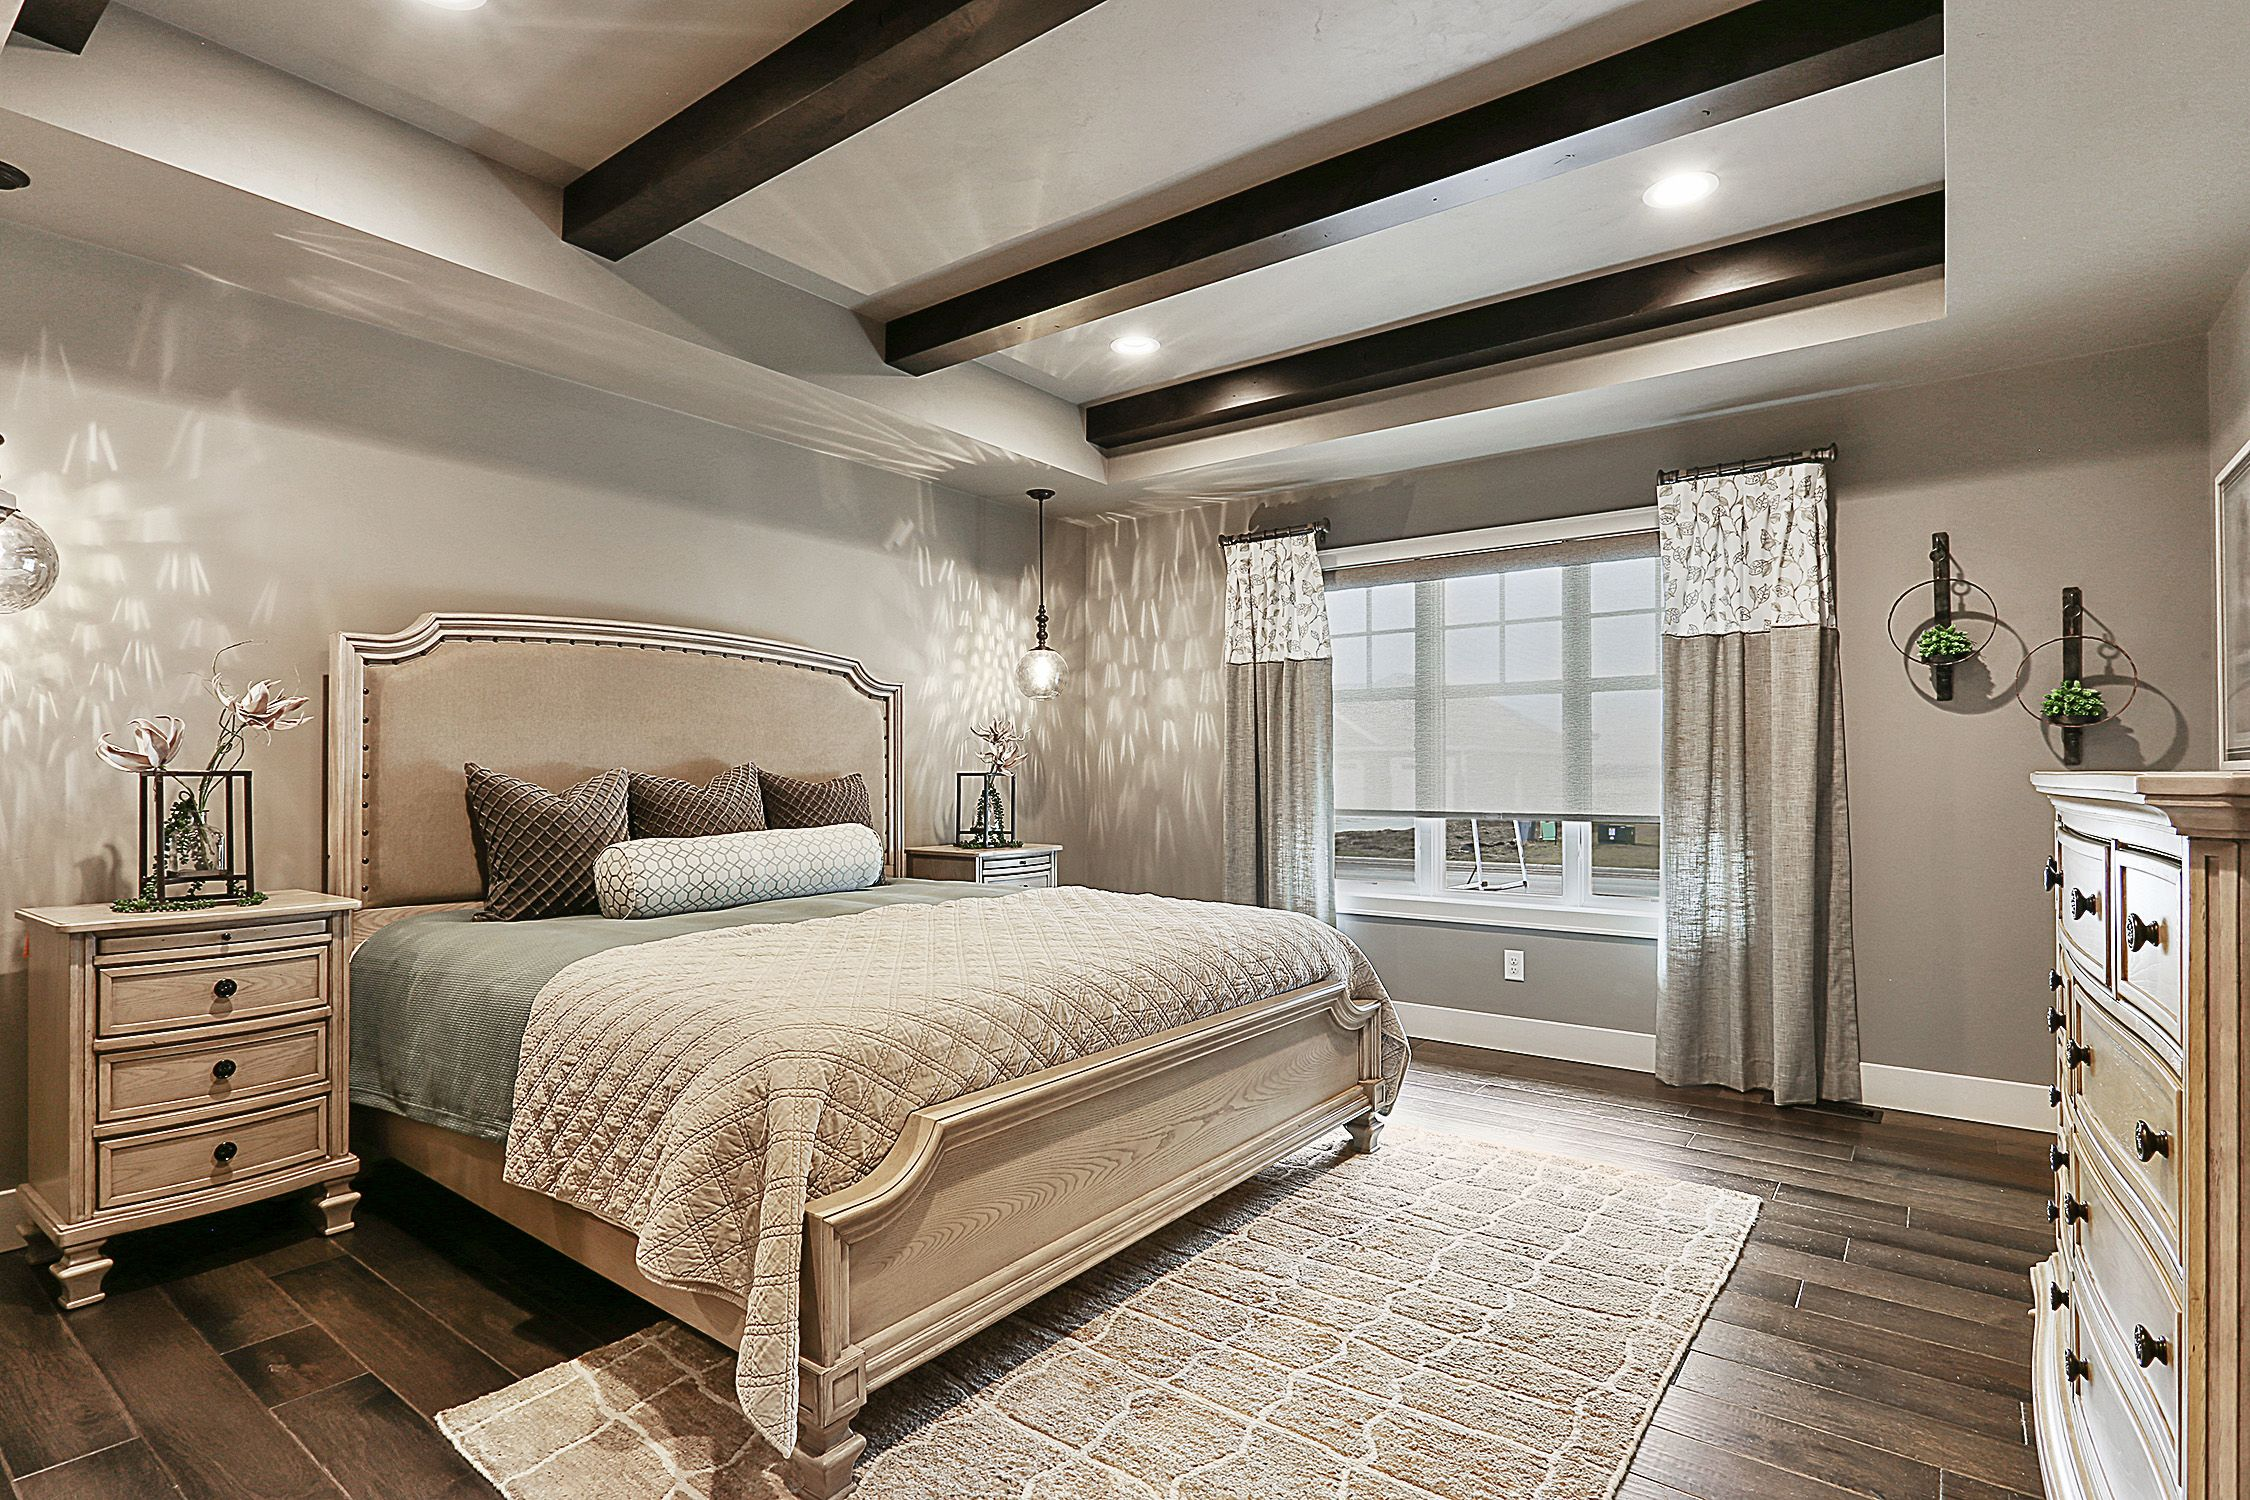 Master Bedroom With Custom Wood Beams In Tray Ceiling Shabby